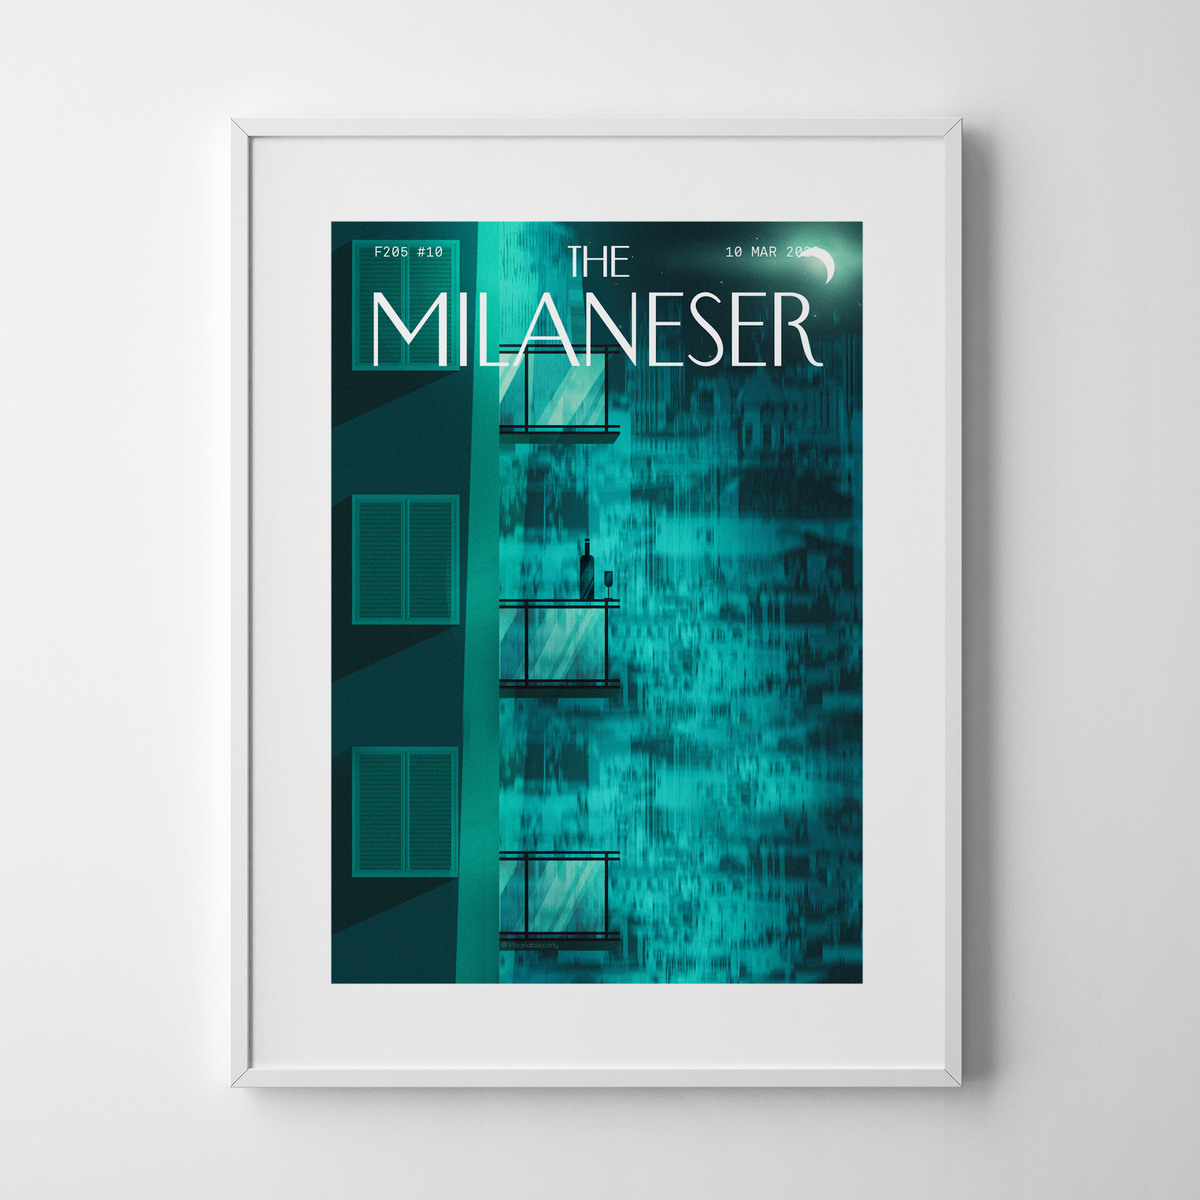 Image of The Milaneser #10